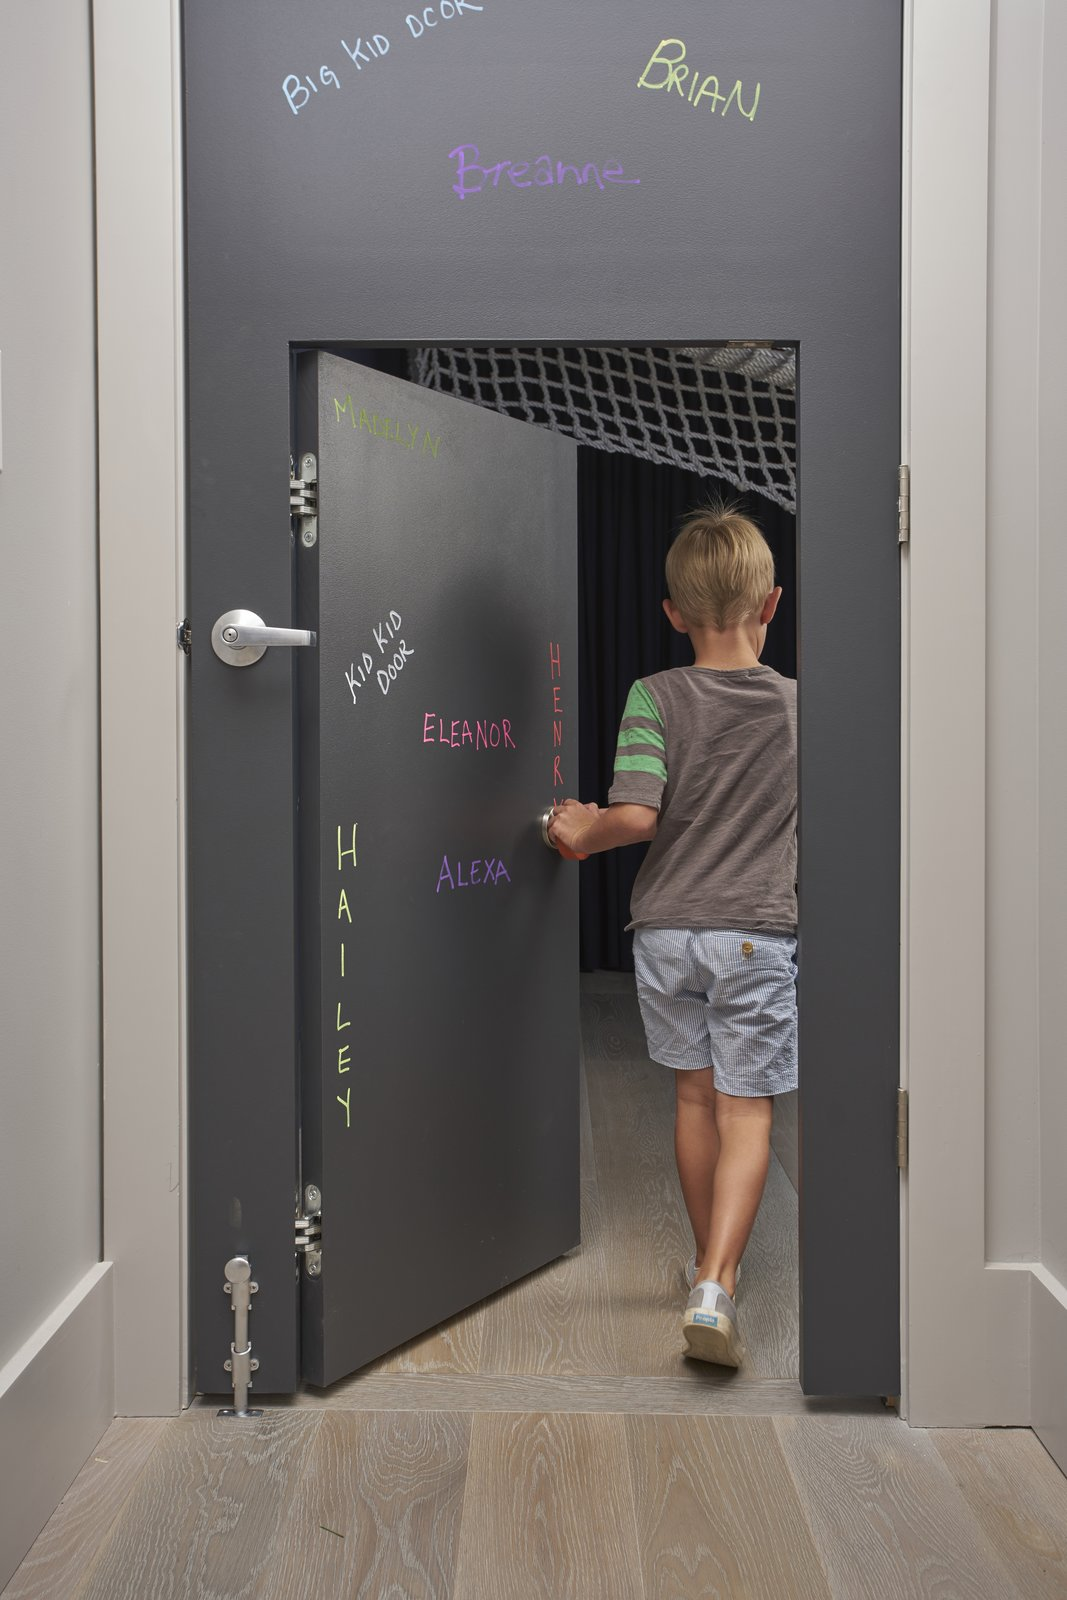 Kids Room, Toddler Age, Neutral Gender, and Playroom Room Type In certain places, the scale of the home is adjusted for children. A standard door, covered in chalk-board paint, has a 48-inch-tall door set inside it.  Photo 6 of 9 in Child's Play: Designing a Polished, All-Ages Playscape